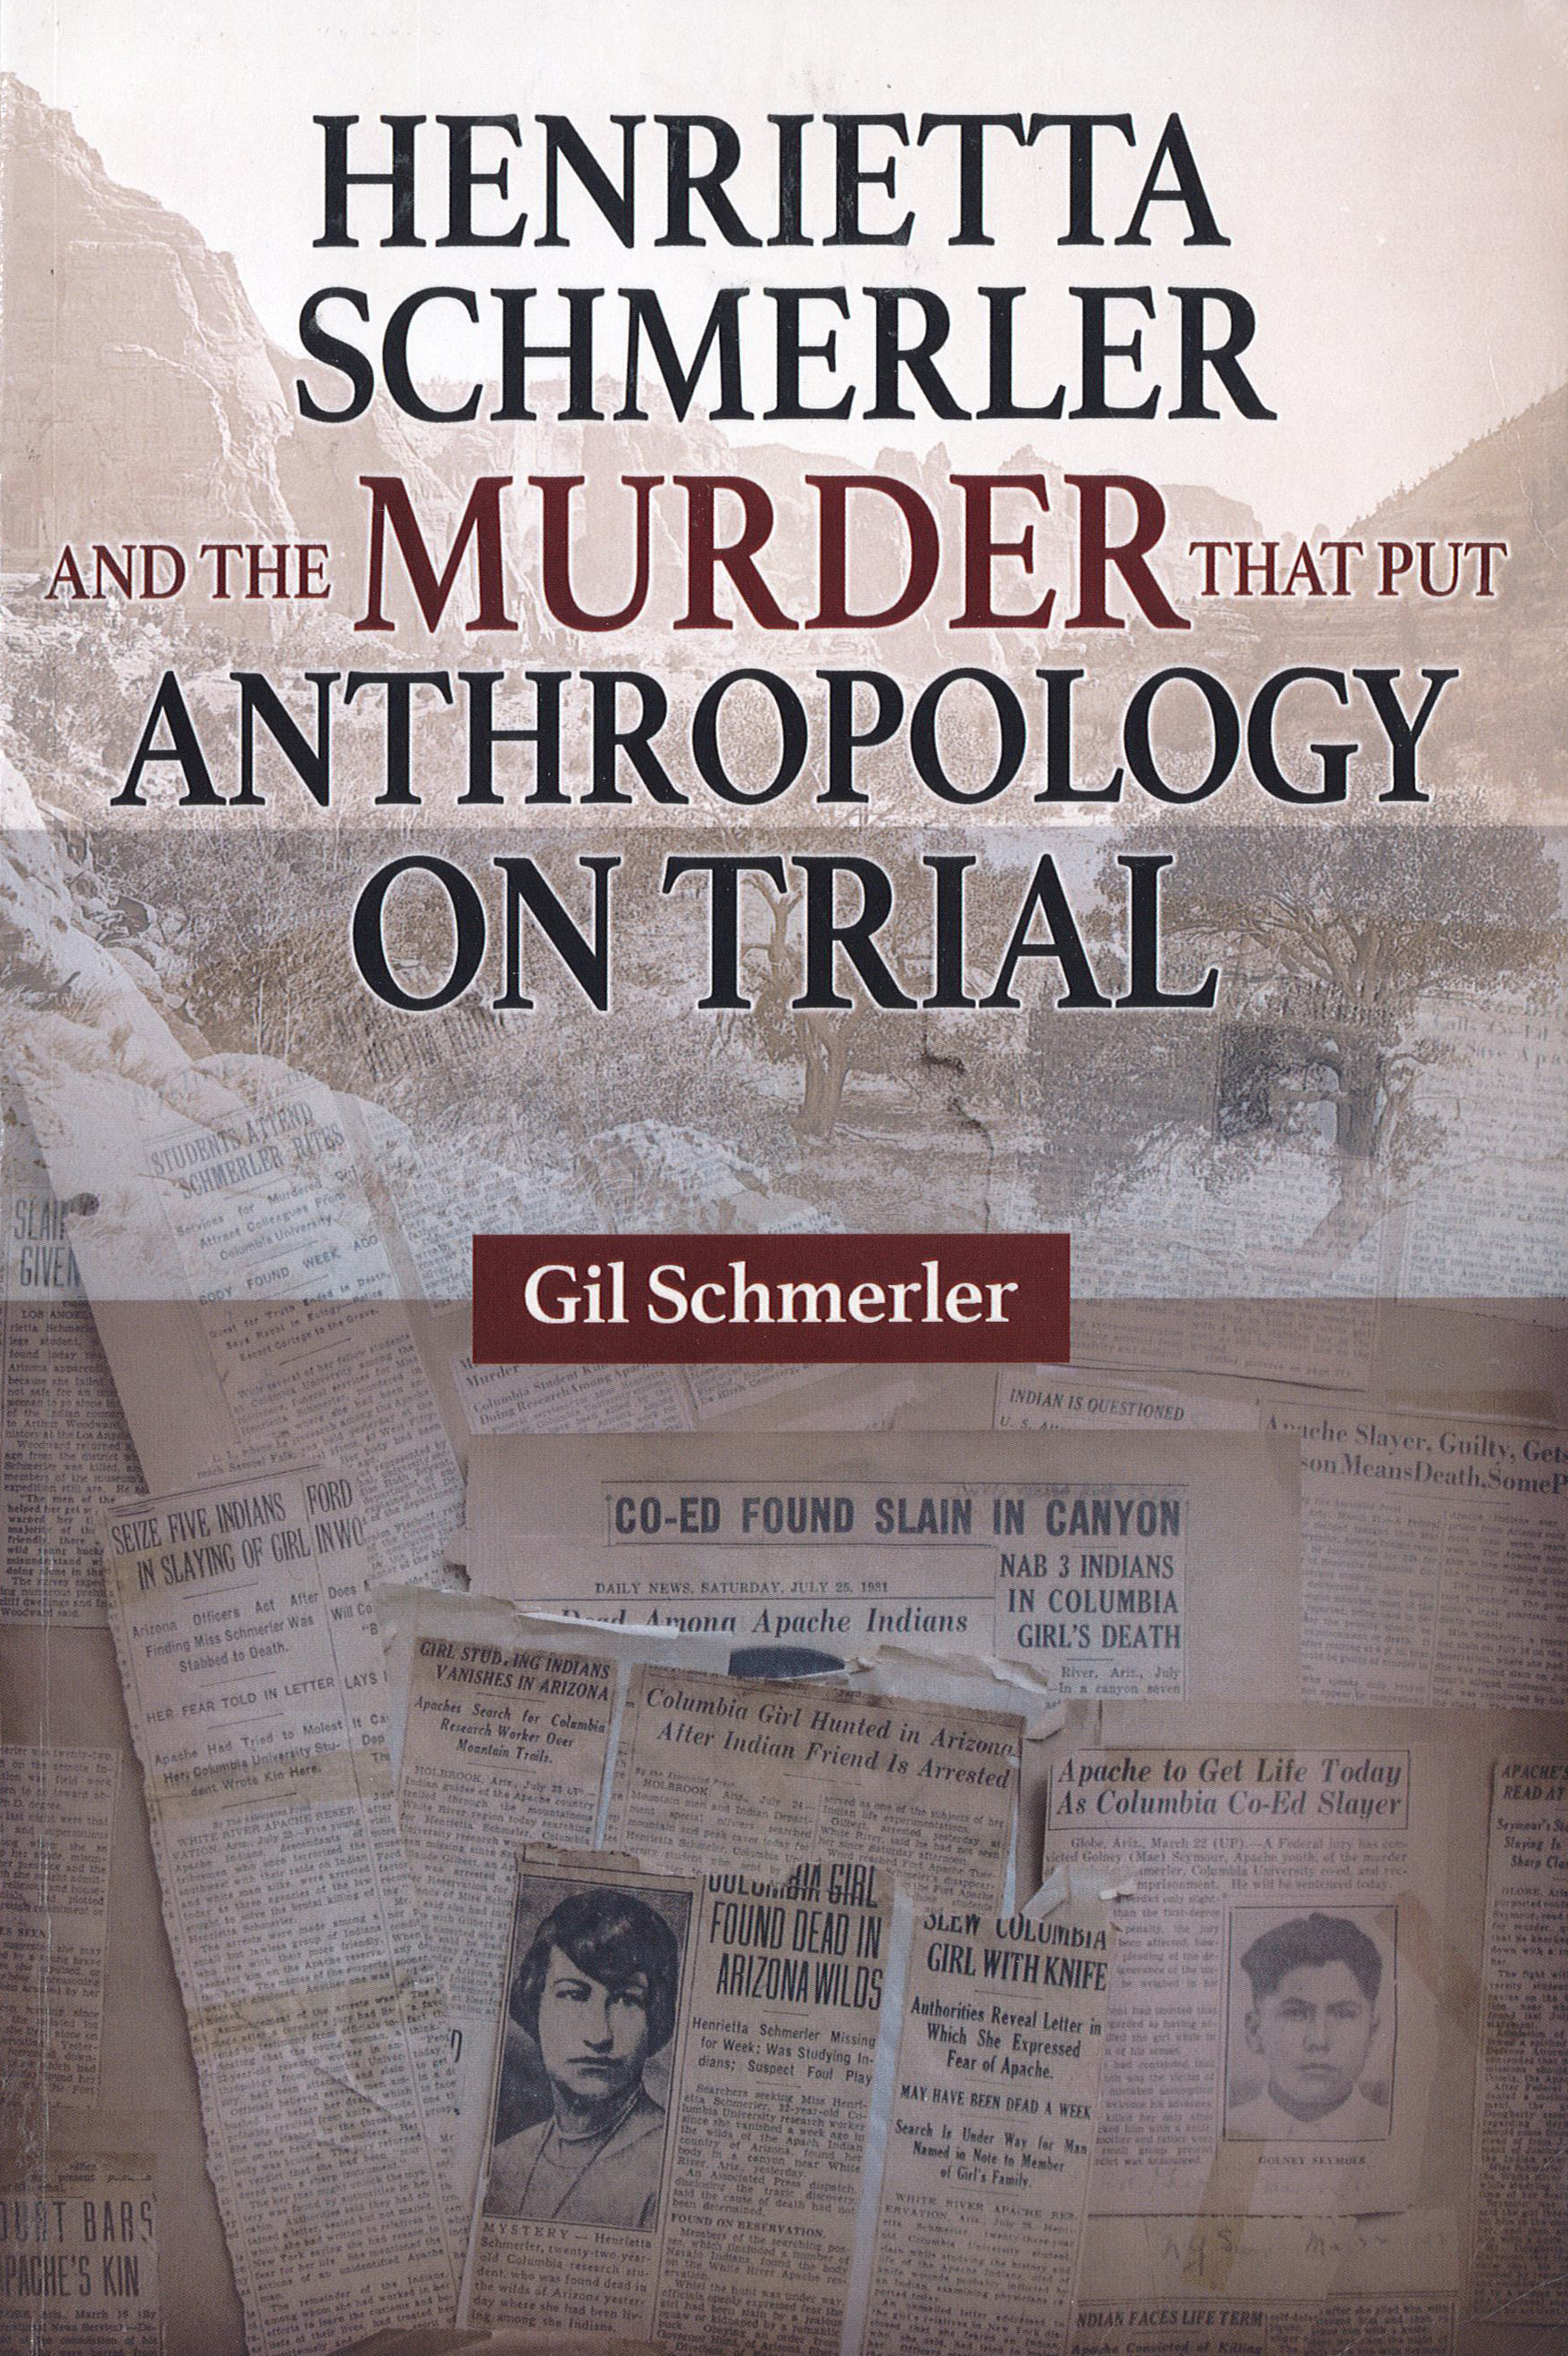 Henrietta Schmerler and the Murder That Put Anthropology on Trial